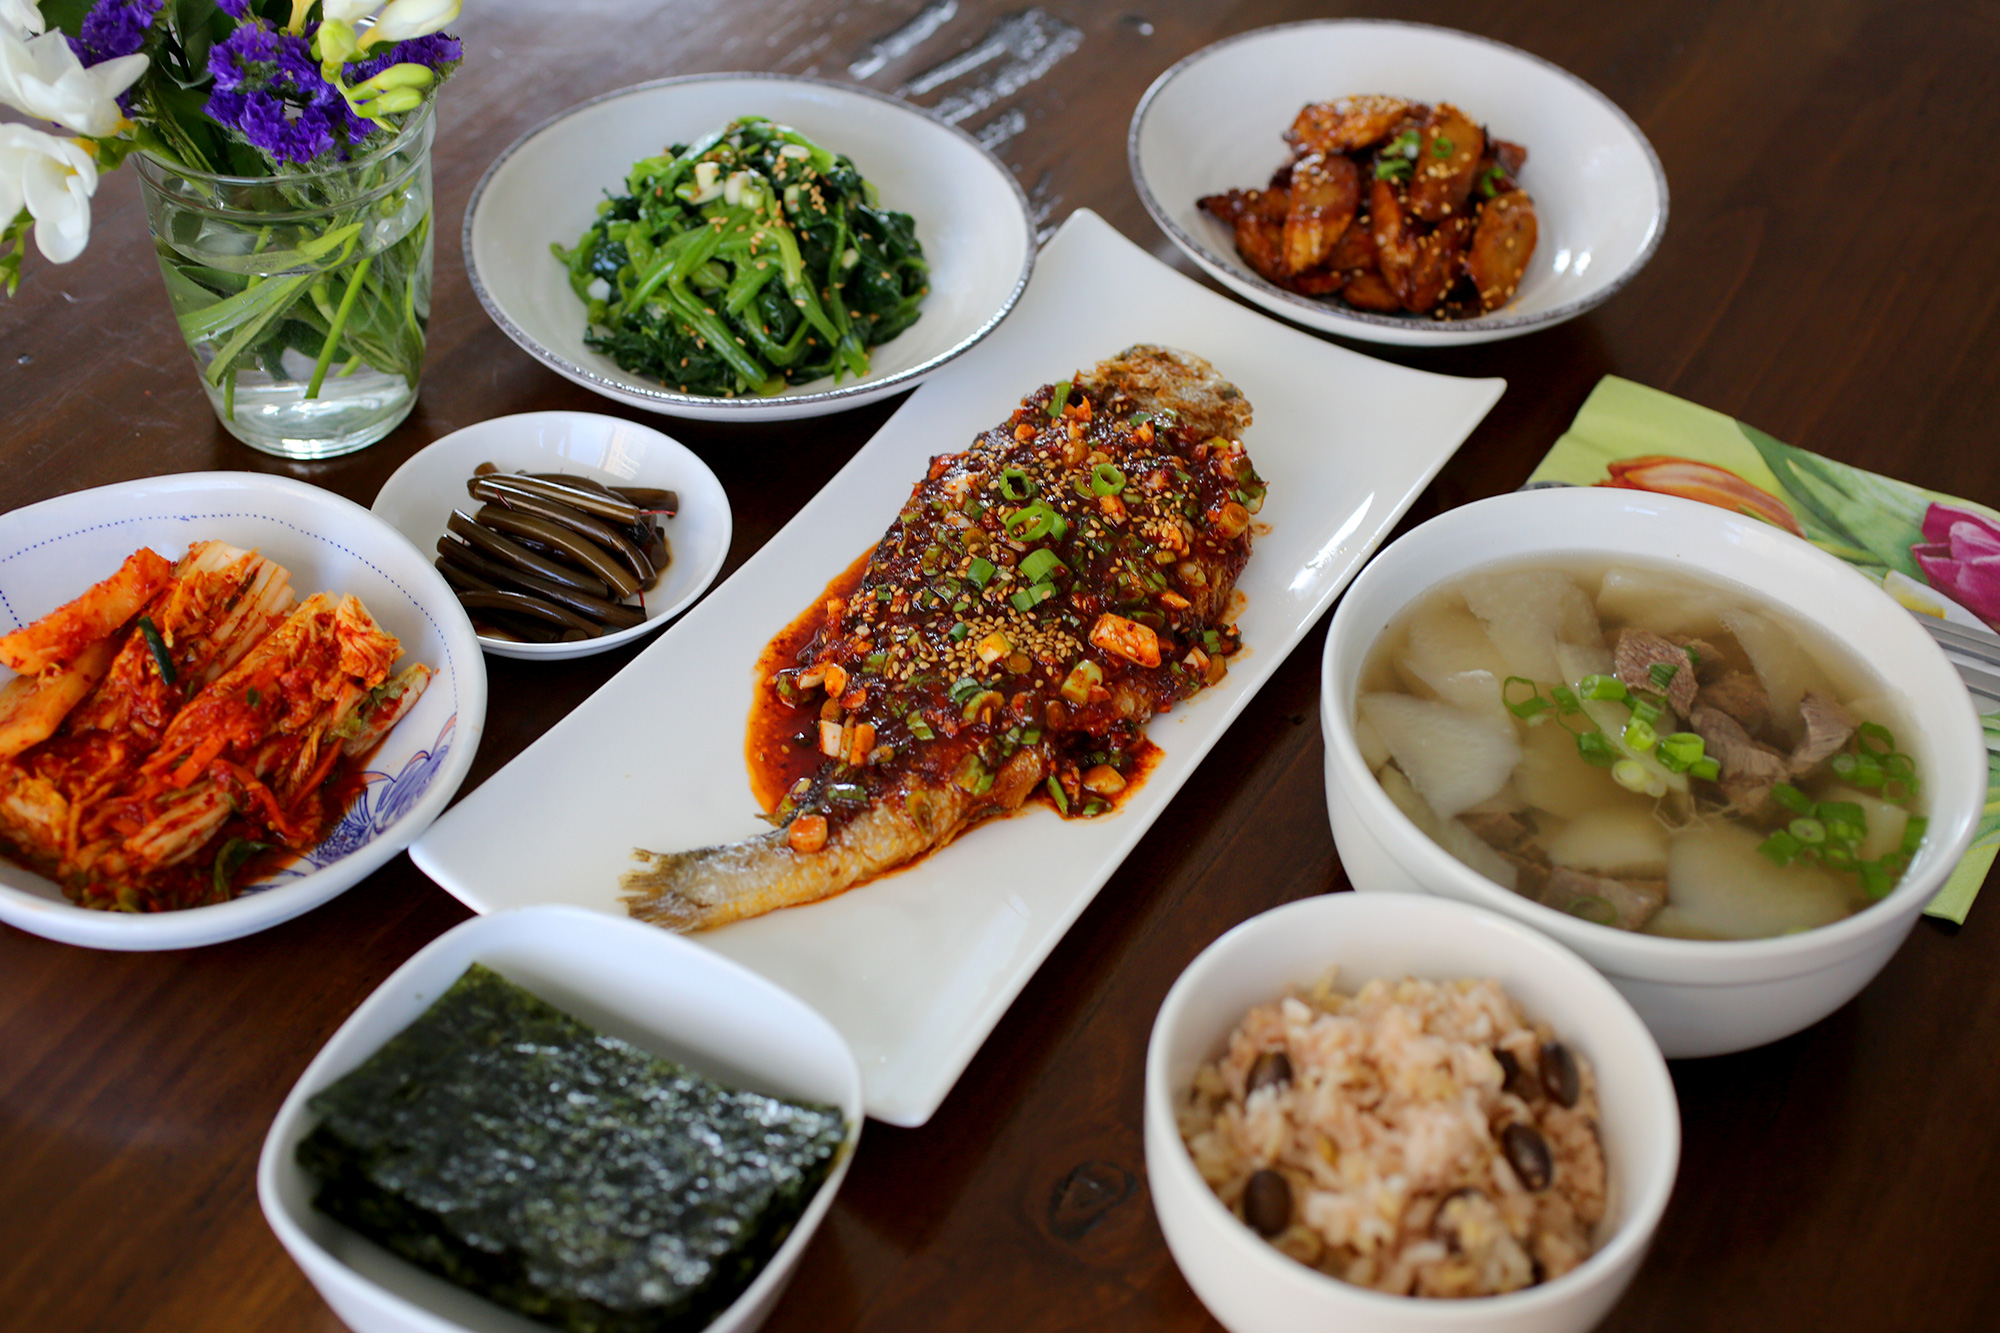 Korean Lunch Table Setting